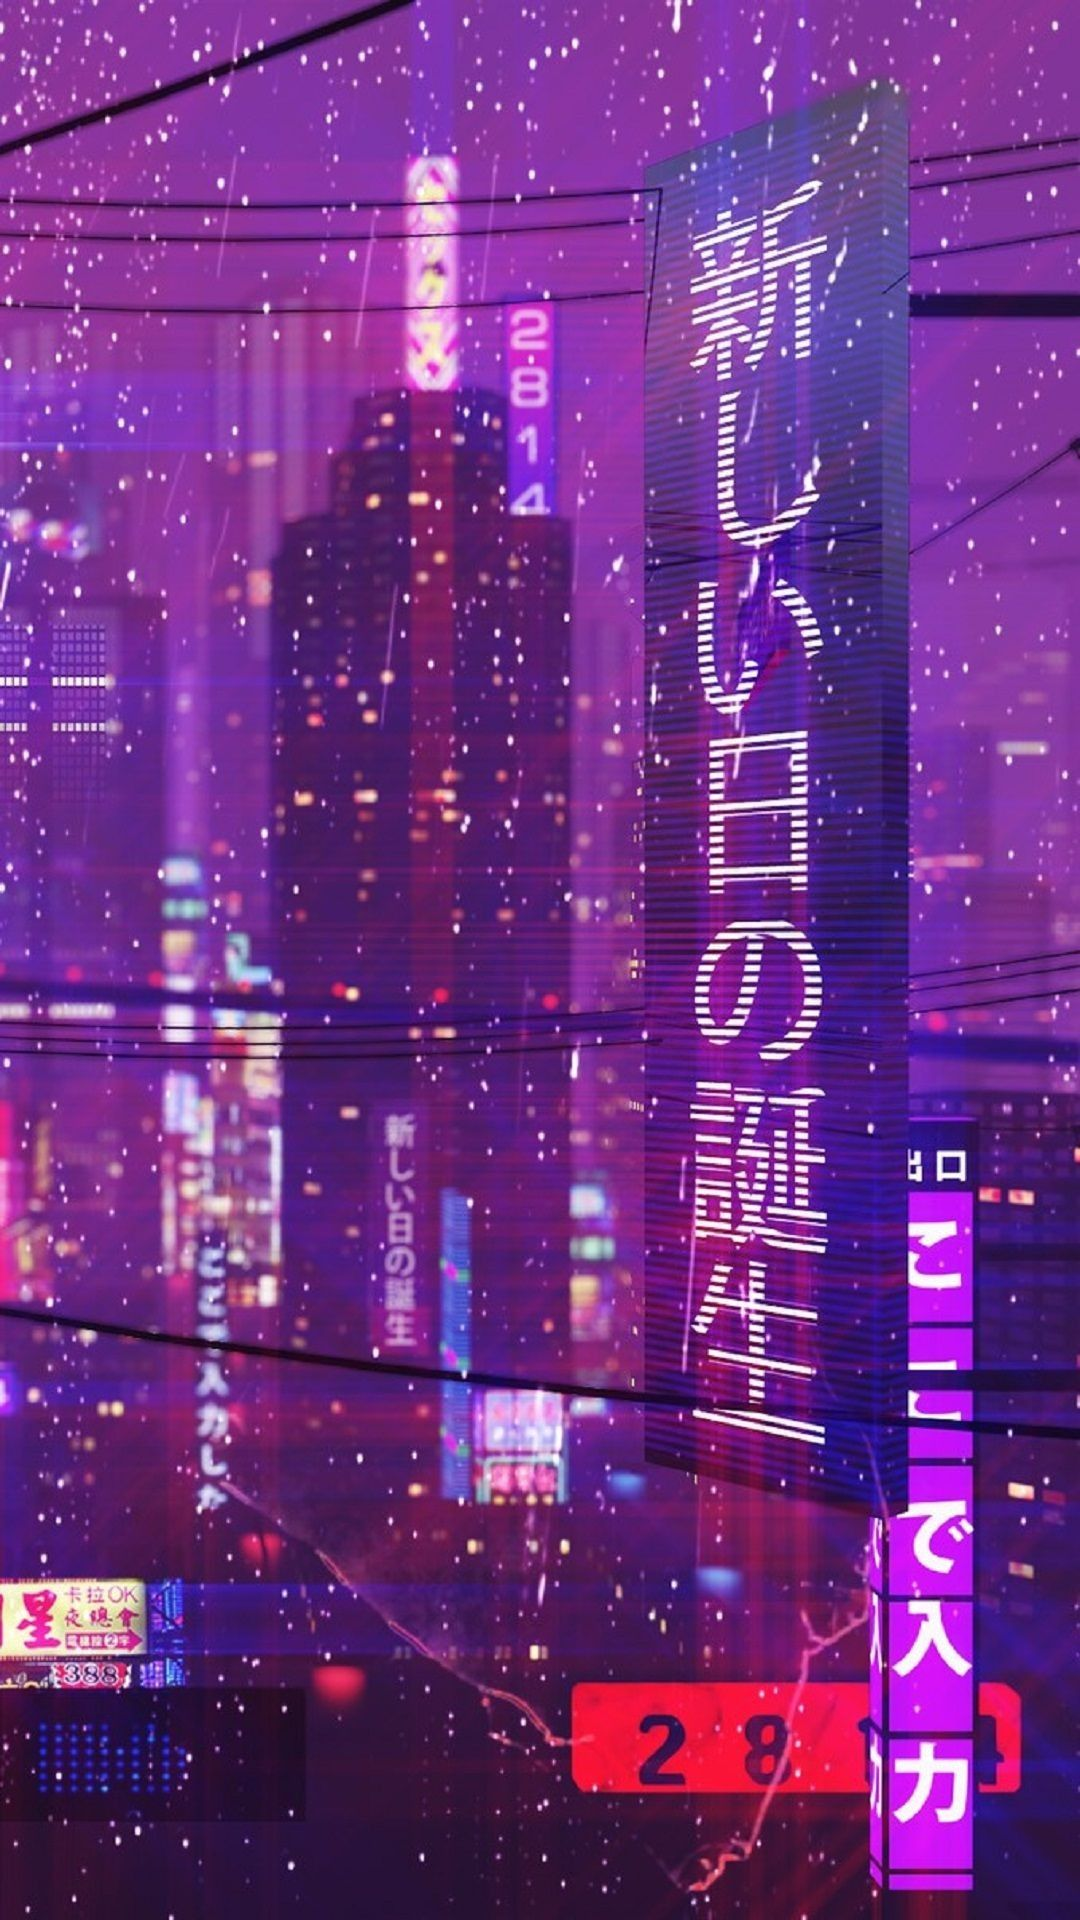 Cyberpunk City Night Time Hd Live Wallpaper Best Of The Most